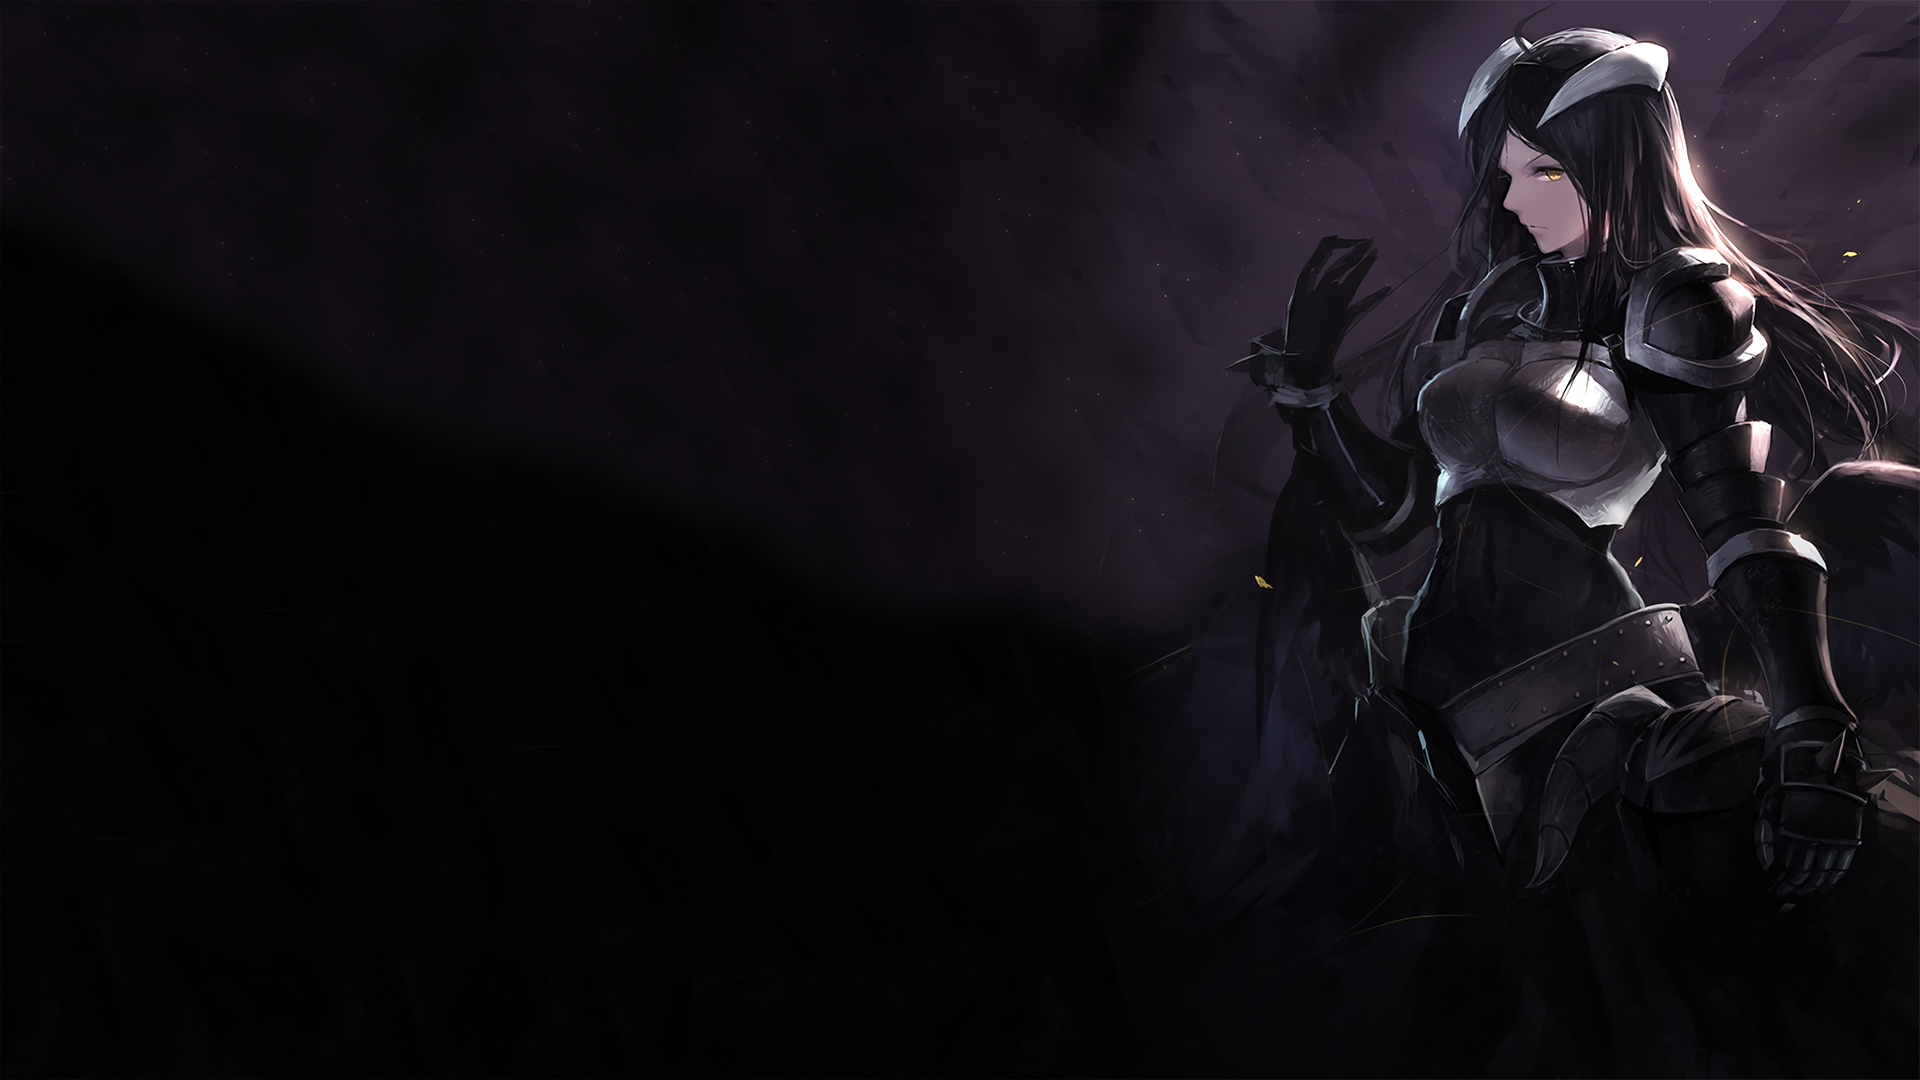 Overlord Albedo 1920x1080 HD Wallpaper From Gallsource